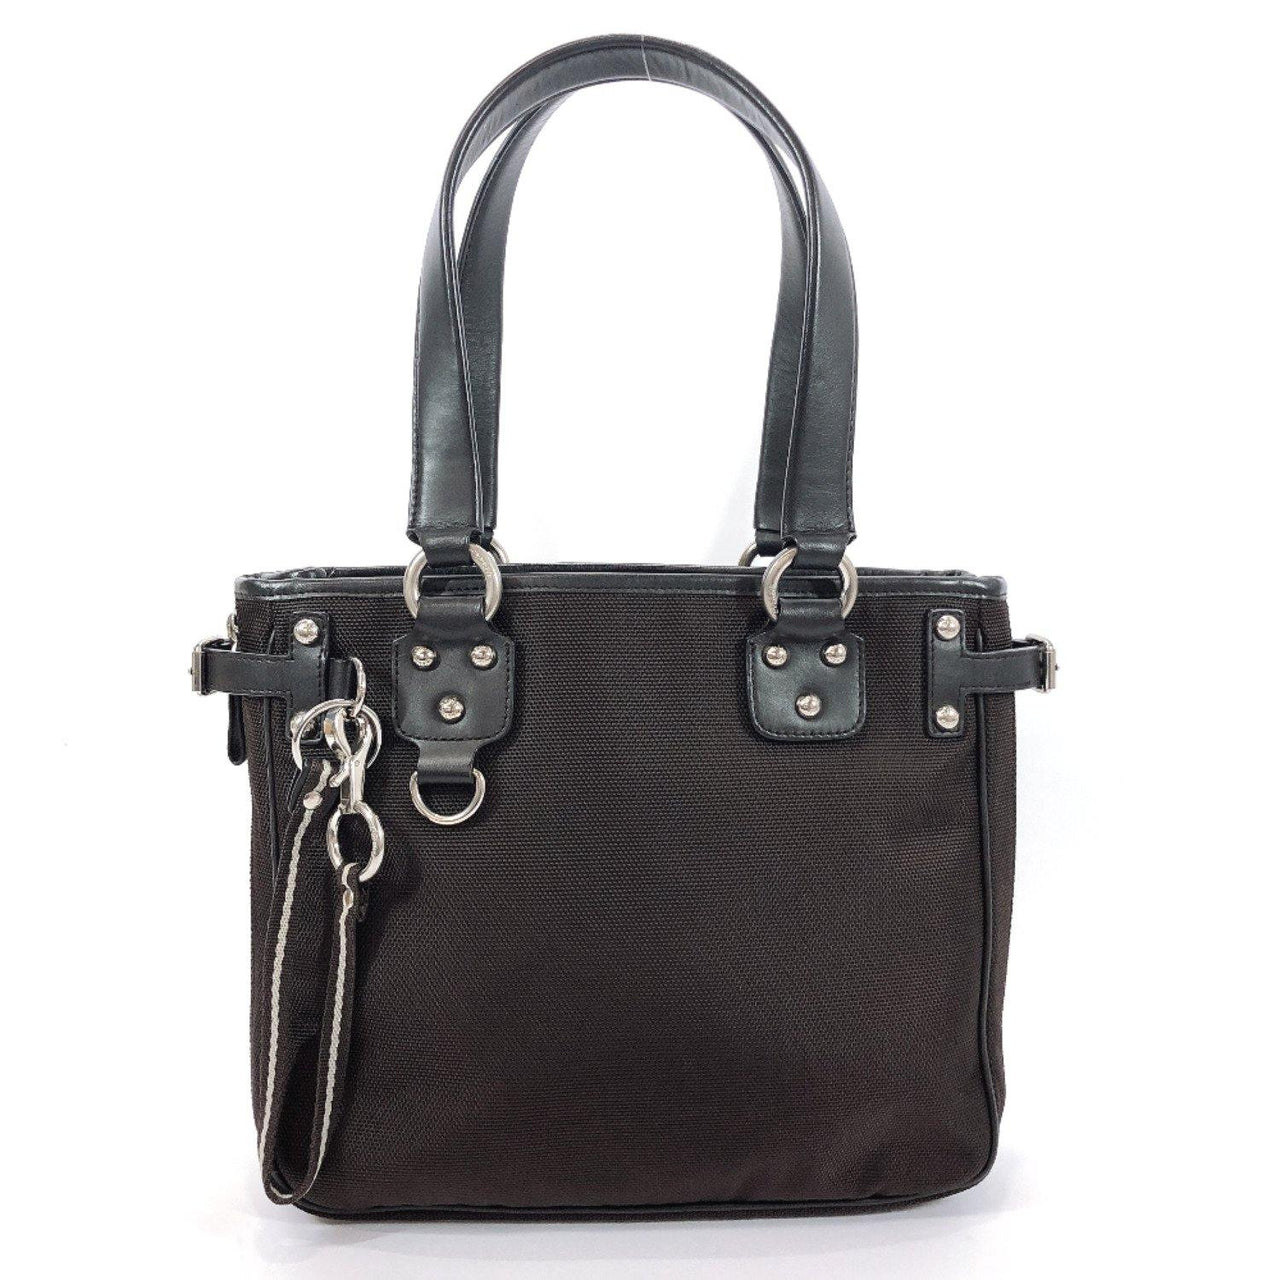 BALLY Tote Bag Nylon/leather Brown Women Used - JP-BRANDS.com